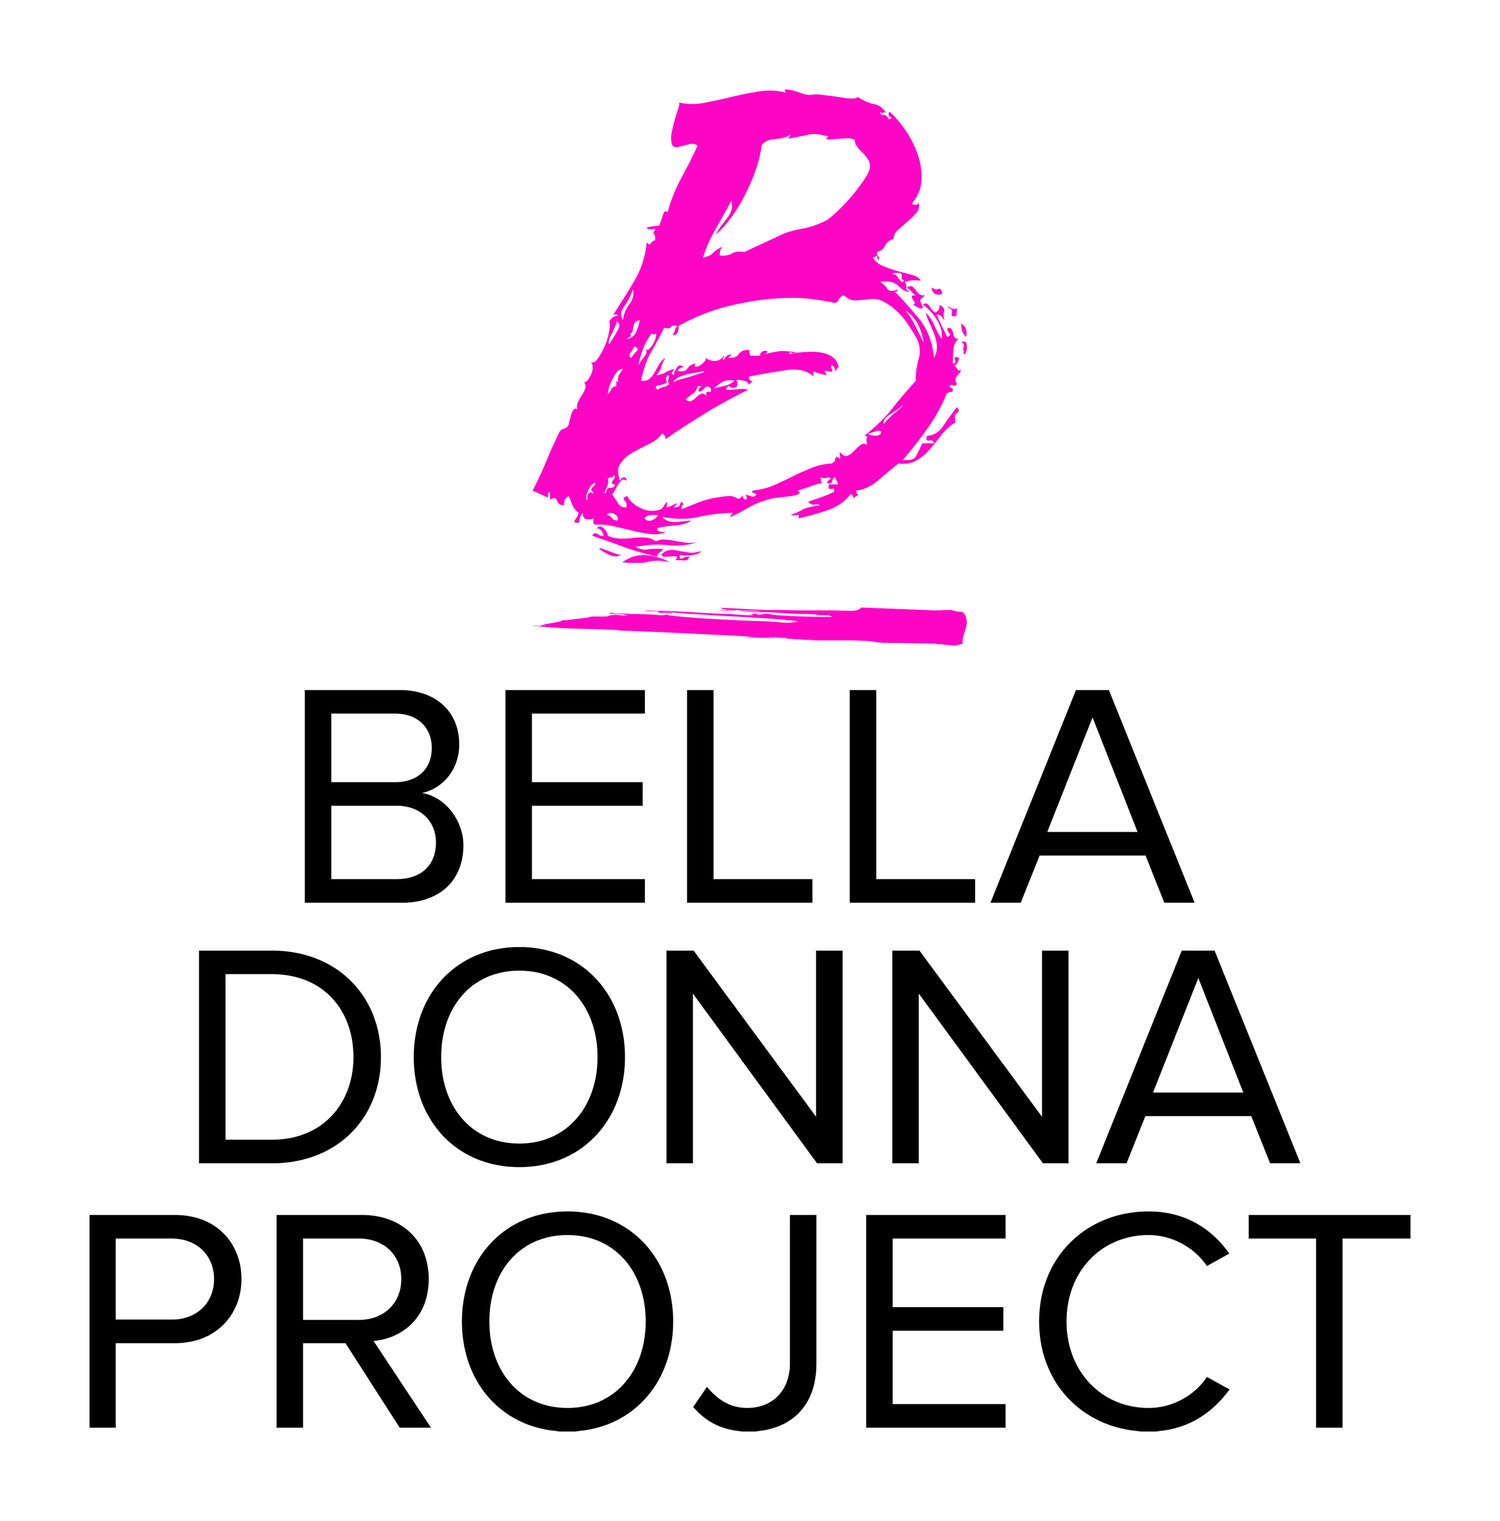 The Bella Donna Project